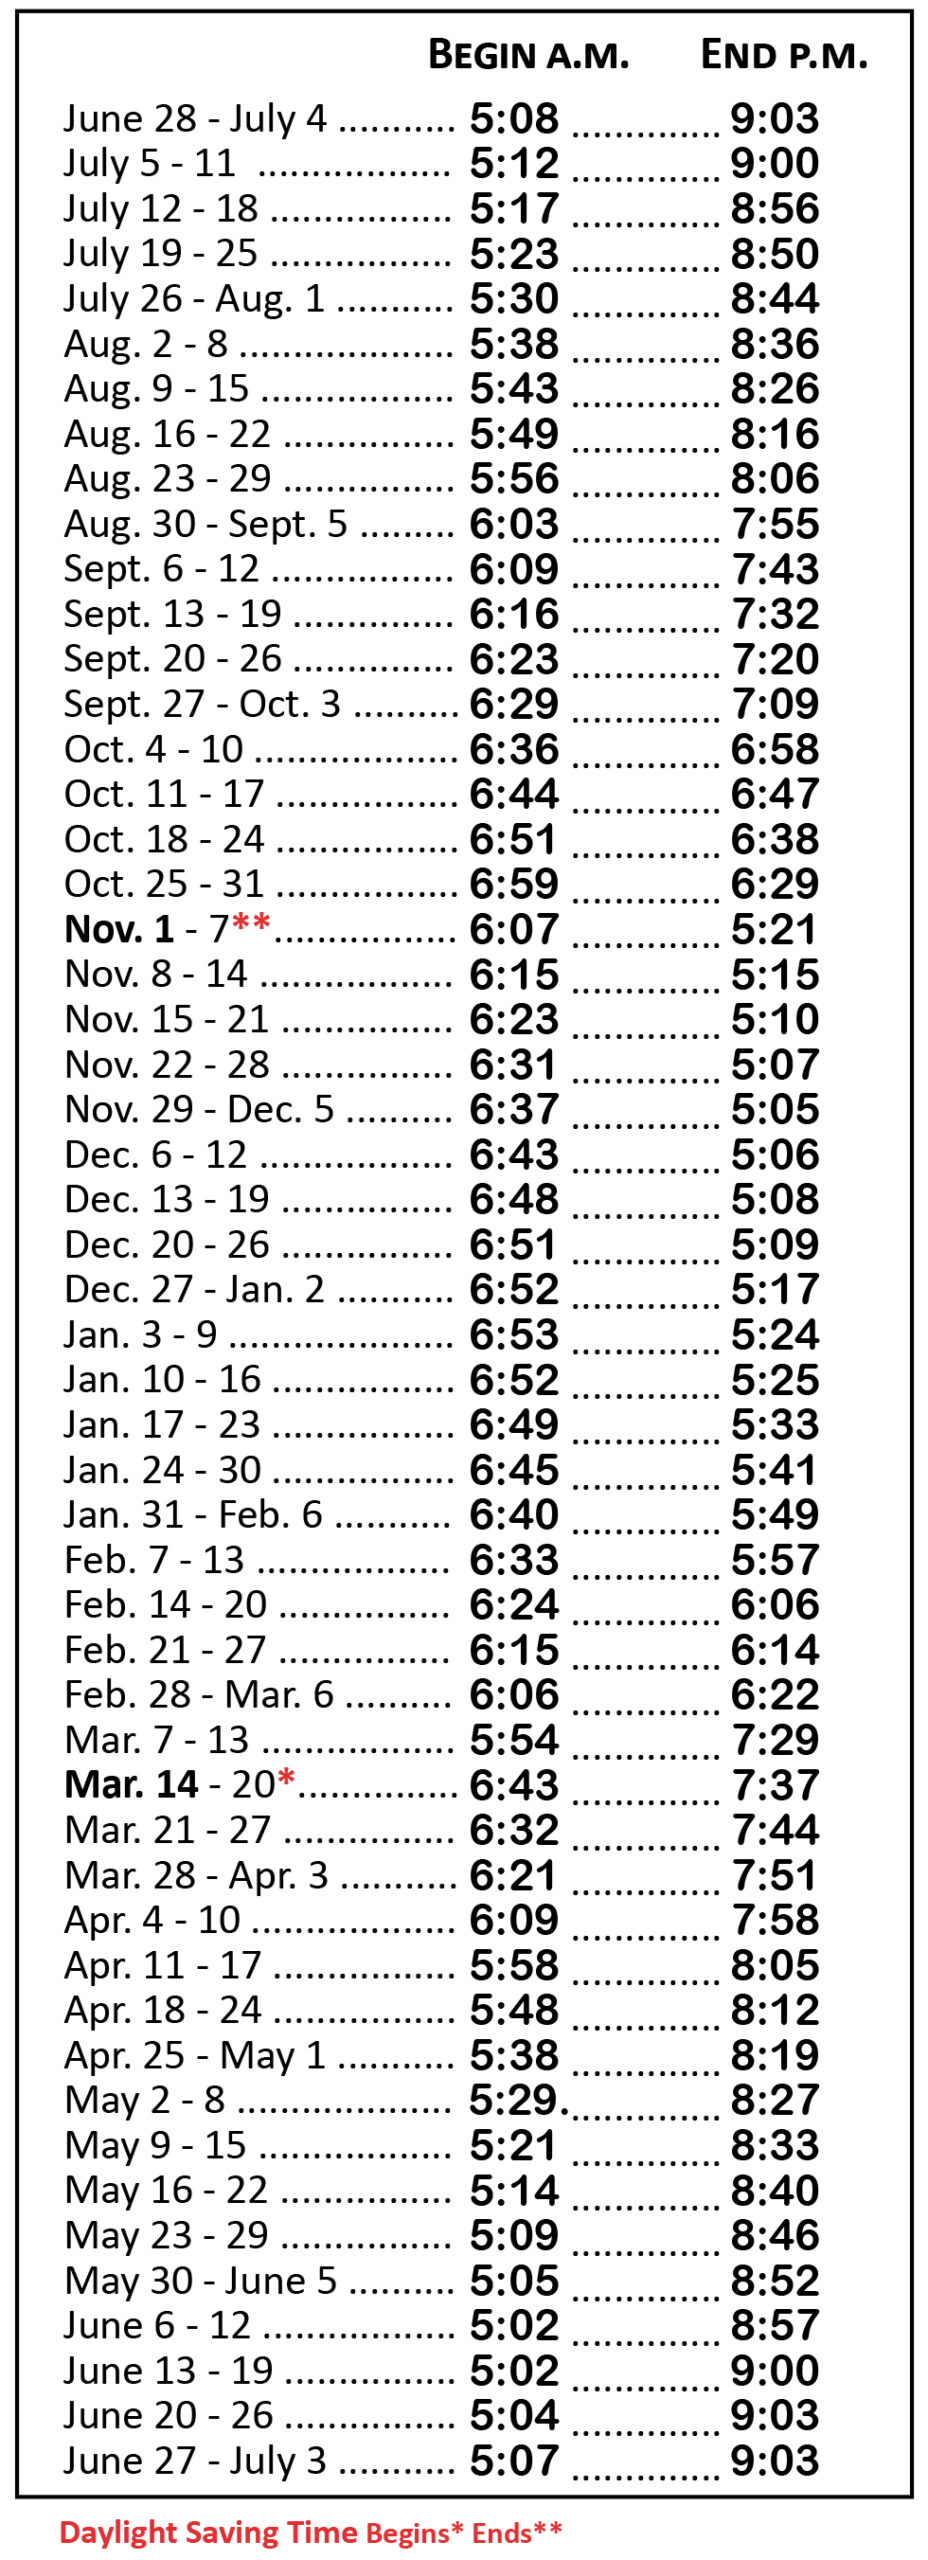 2020-21 Hunting Hours Table in 2021 Pa Rut Prediction